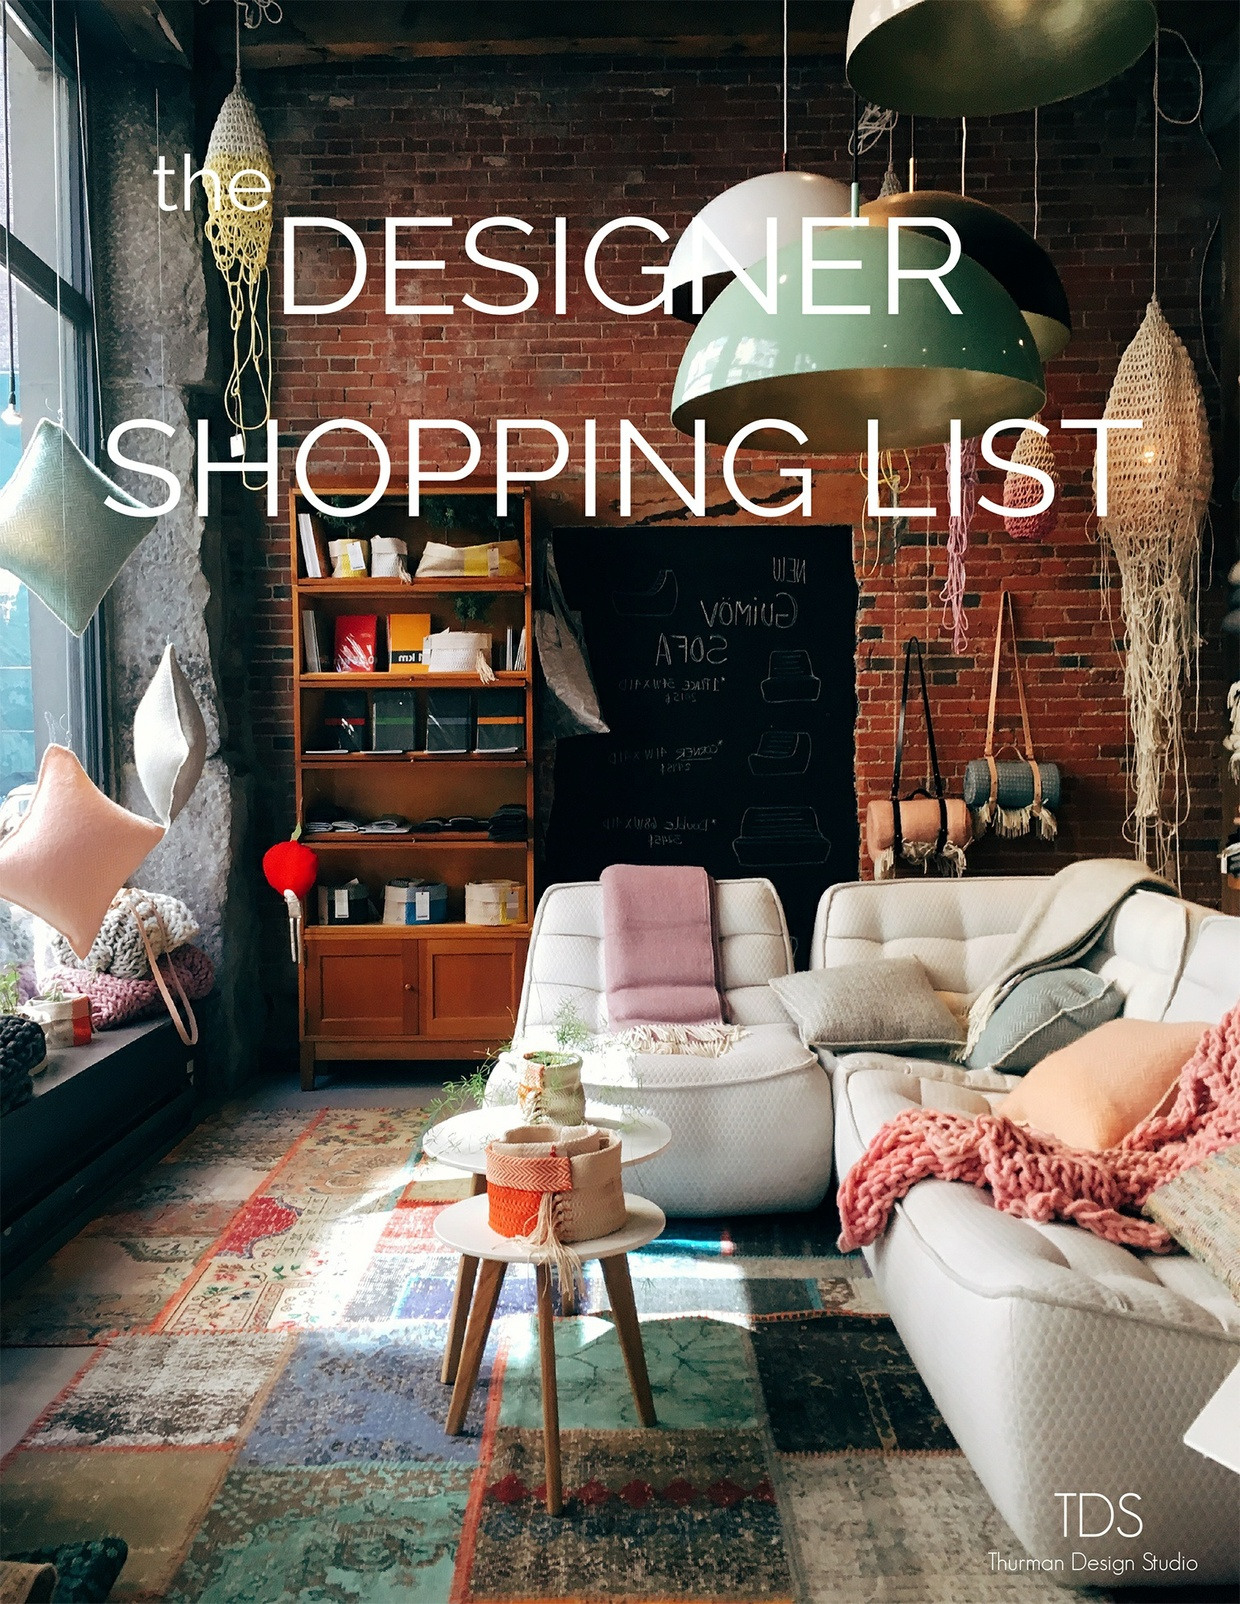 TDS- the Designer Shopping List